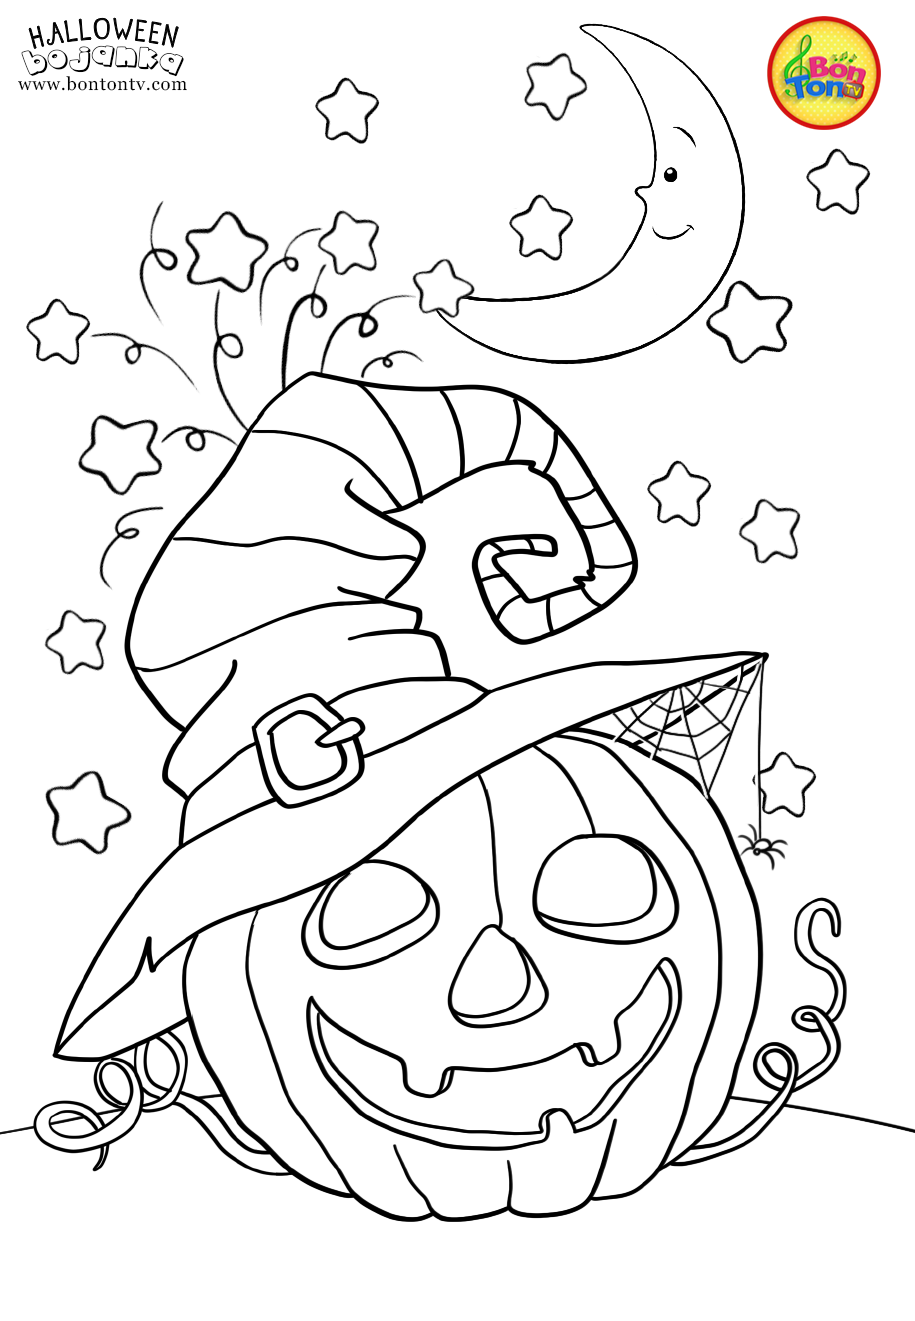 Latest Photographs Kids Coloring Books Thoughts Right Here Is The Fina In 2021 Halloween Coloring Book Halloween Coloring Pages Printable Free Halloween Coloring Pages